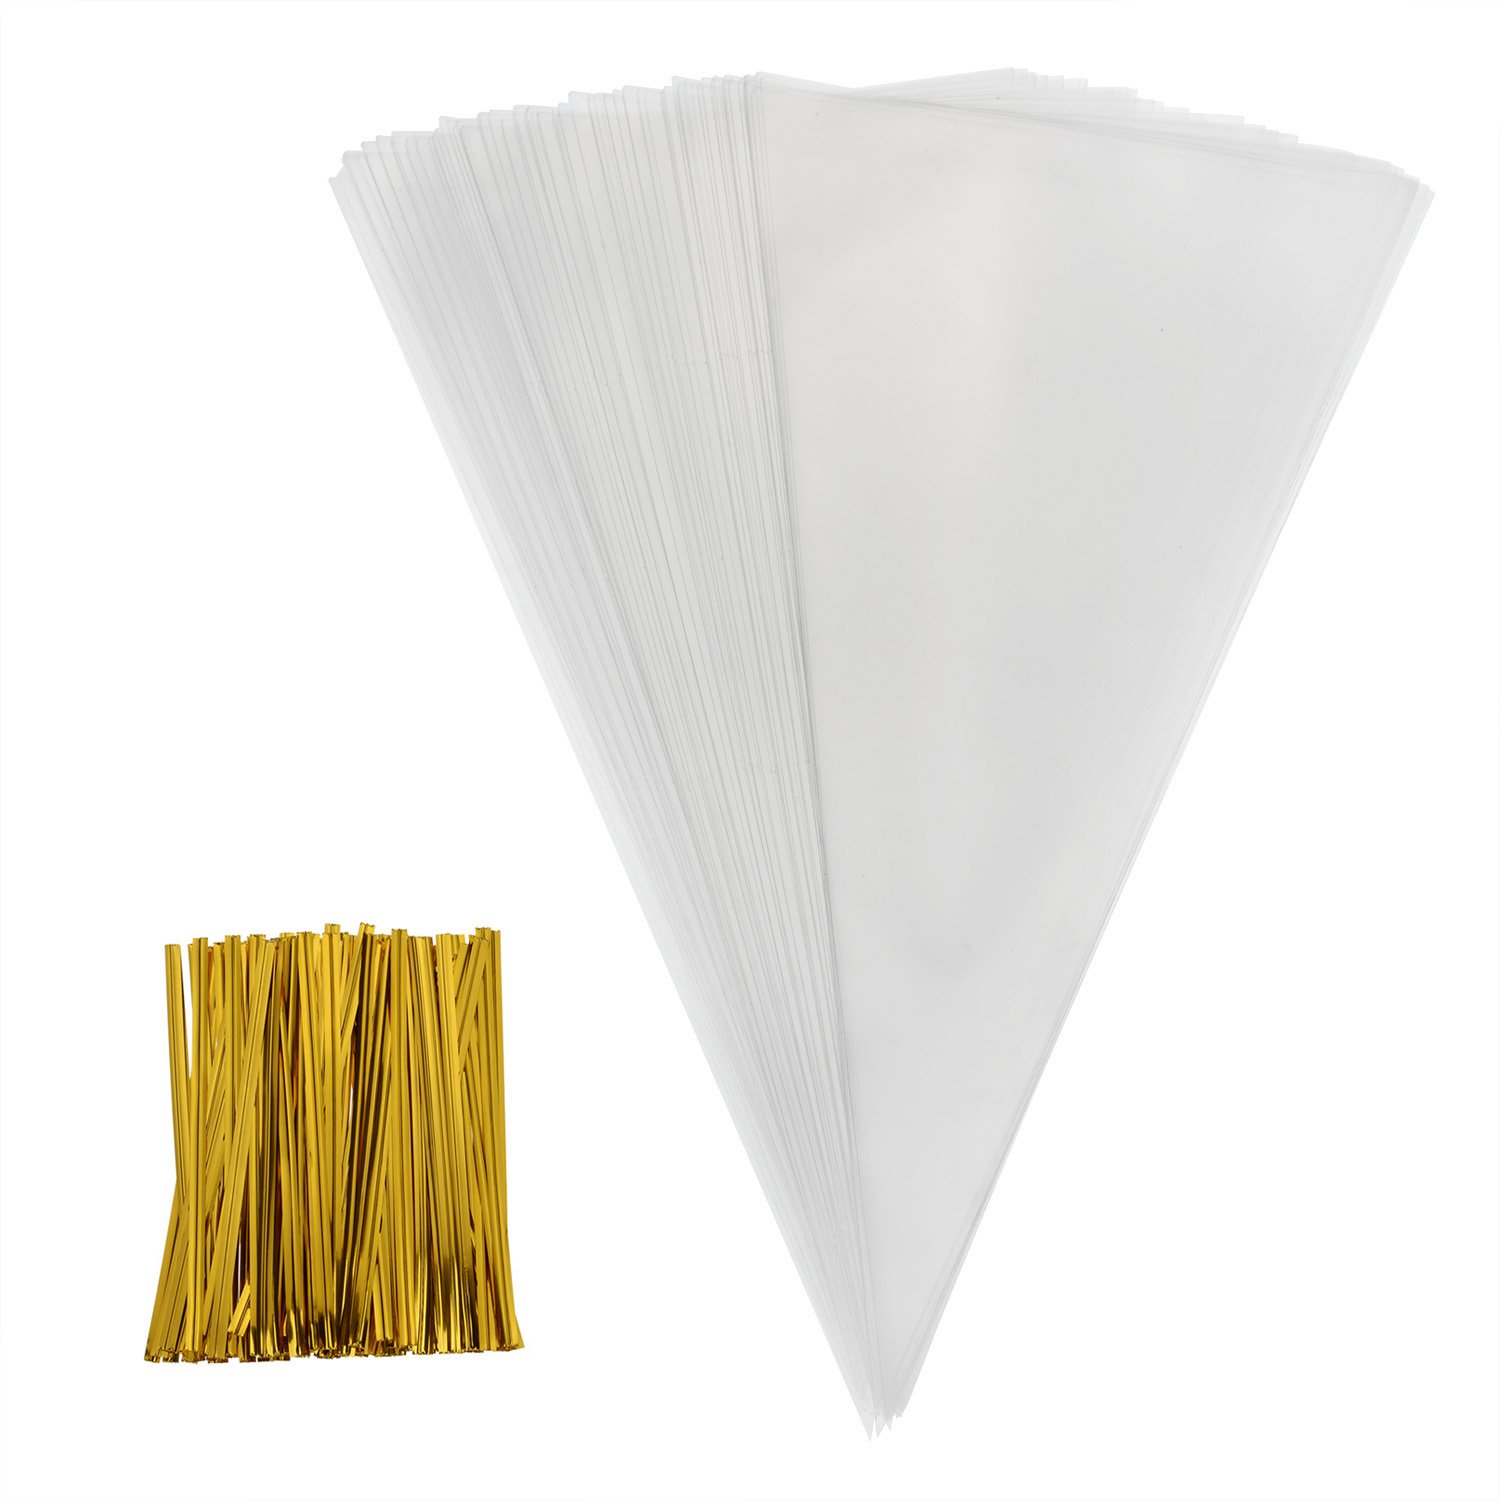 Outus 100 Piece Medium Transparent Cone Bags Clear Cello Bags Sweets Treat Bags with 100 Piece Gold Twist Ties 11.8 by 6.3 Inch